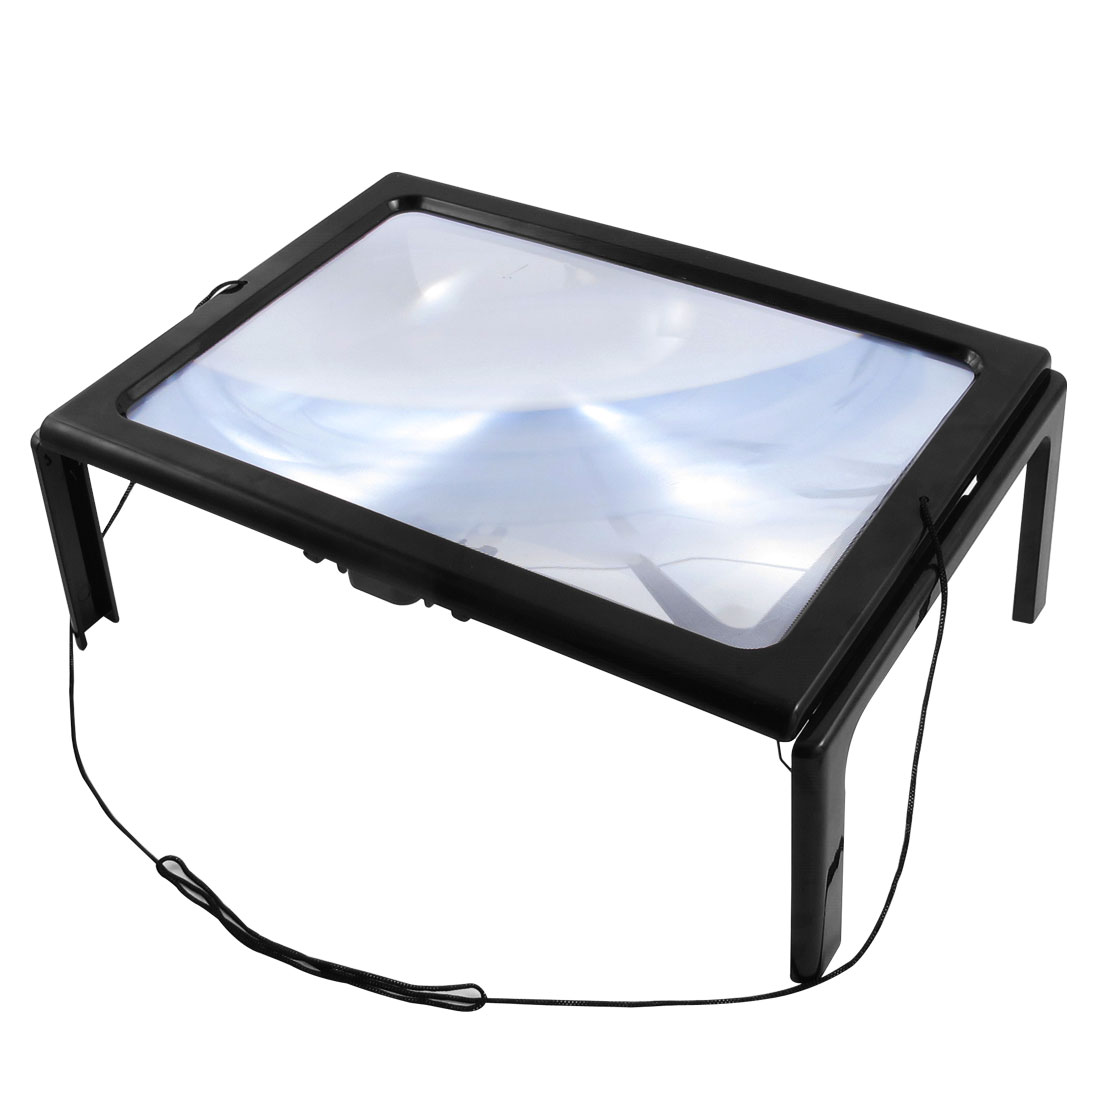 Unique Bargains Reading LED Lights Decor Cord Sheet Foldable Hands Free Full Page Magnifier